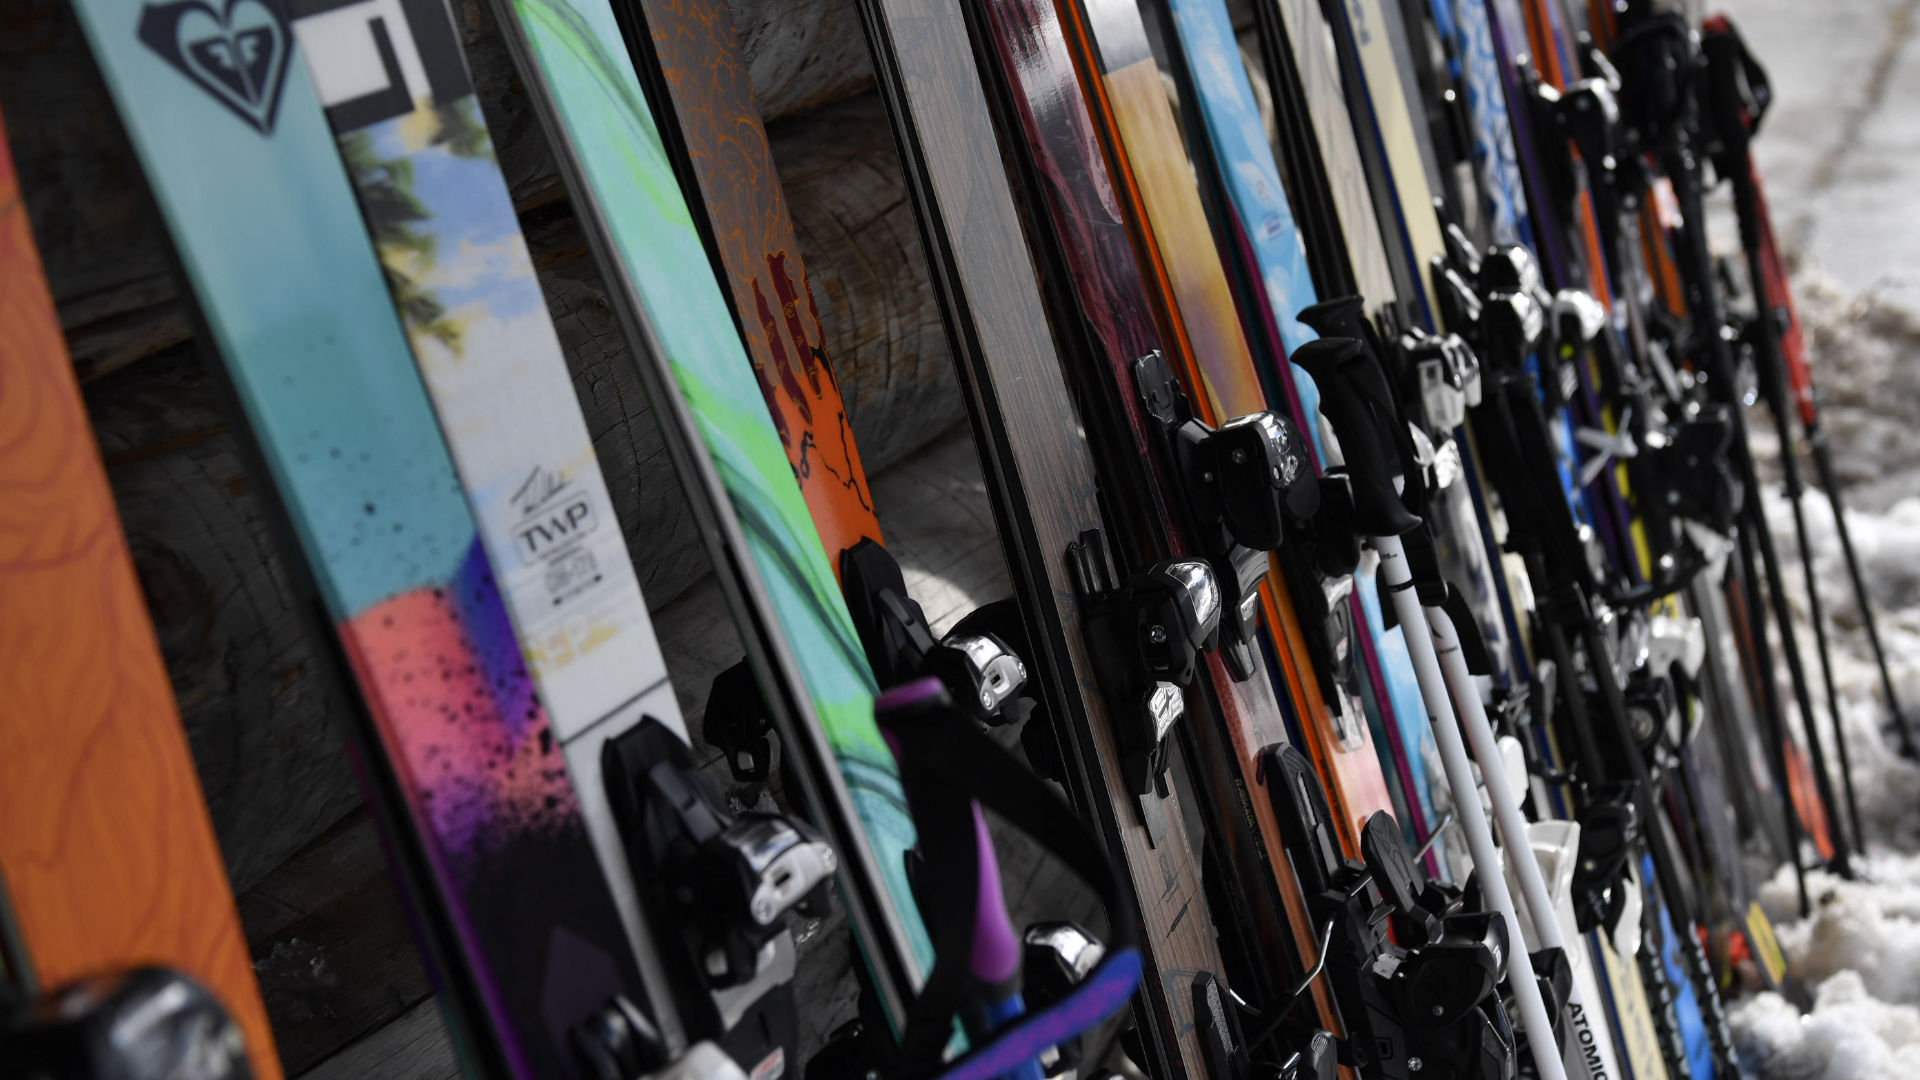 Variety of different skis with bindings